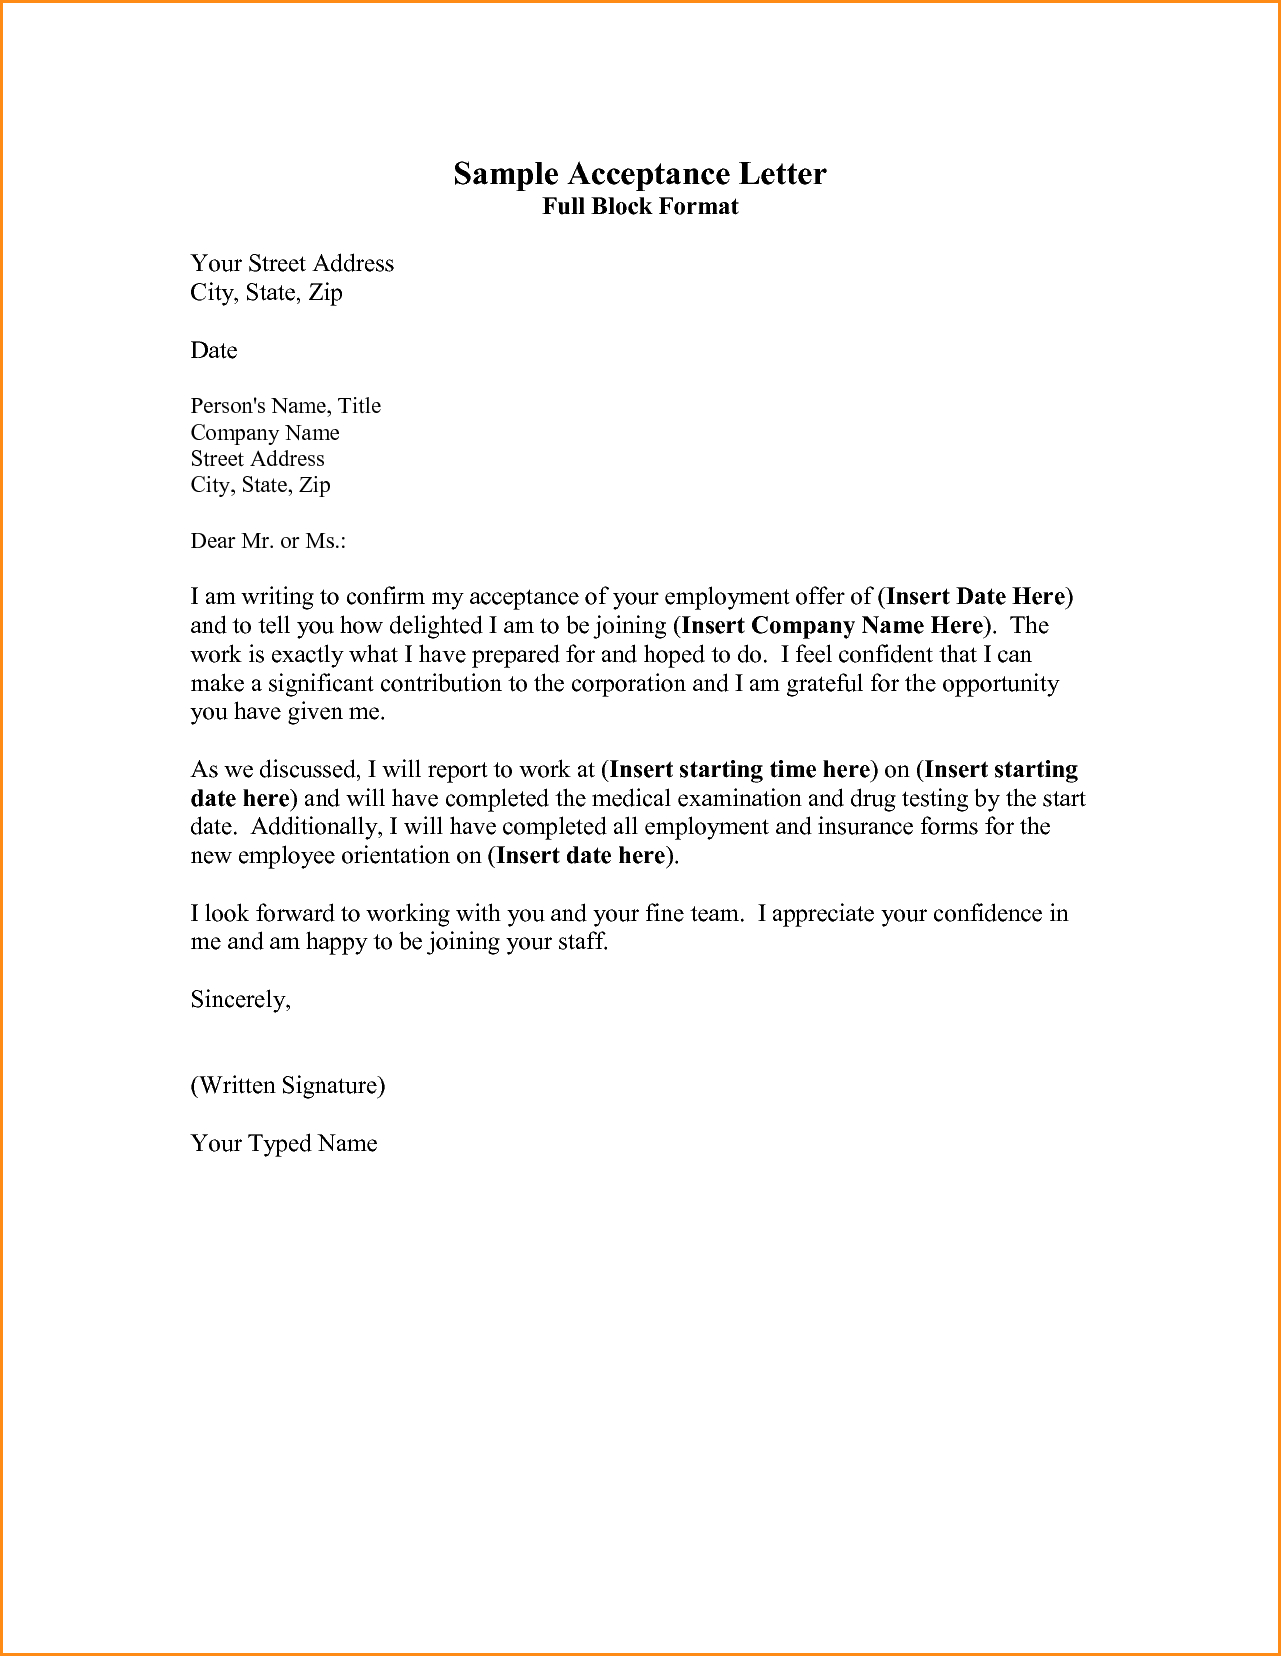 business proposal acceptance letter template sample acceptance letter full block format your street address